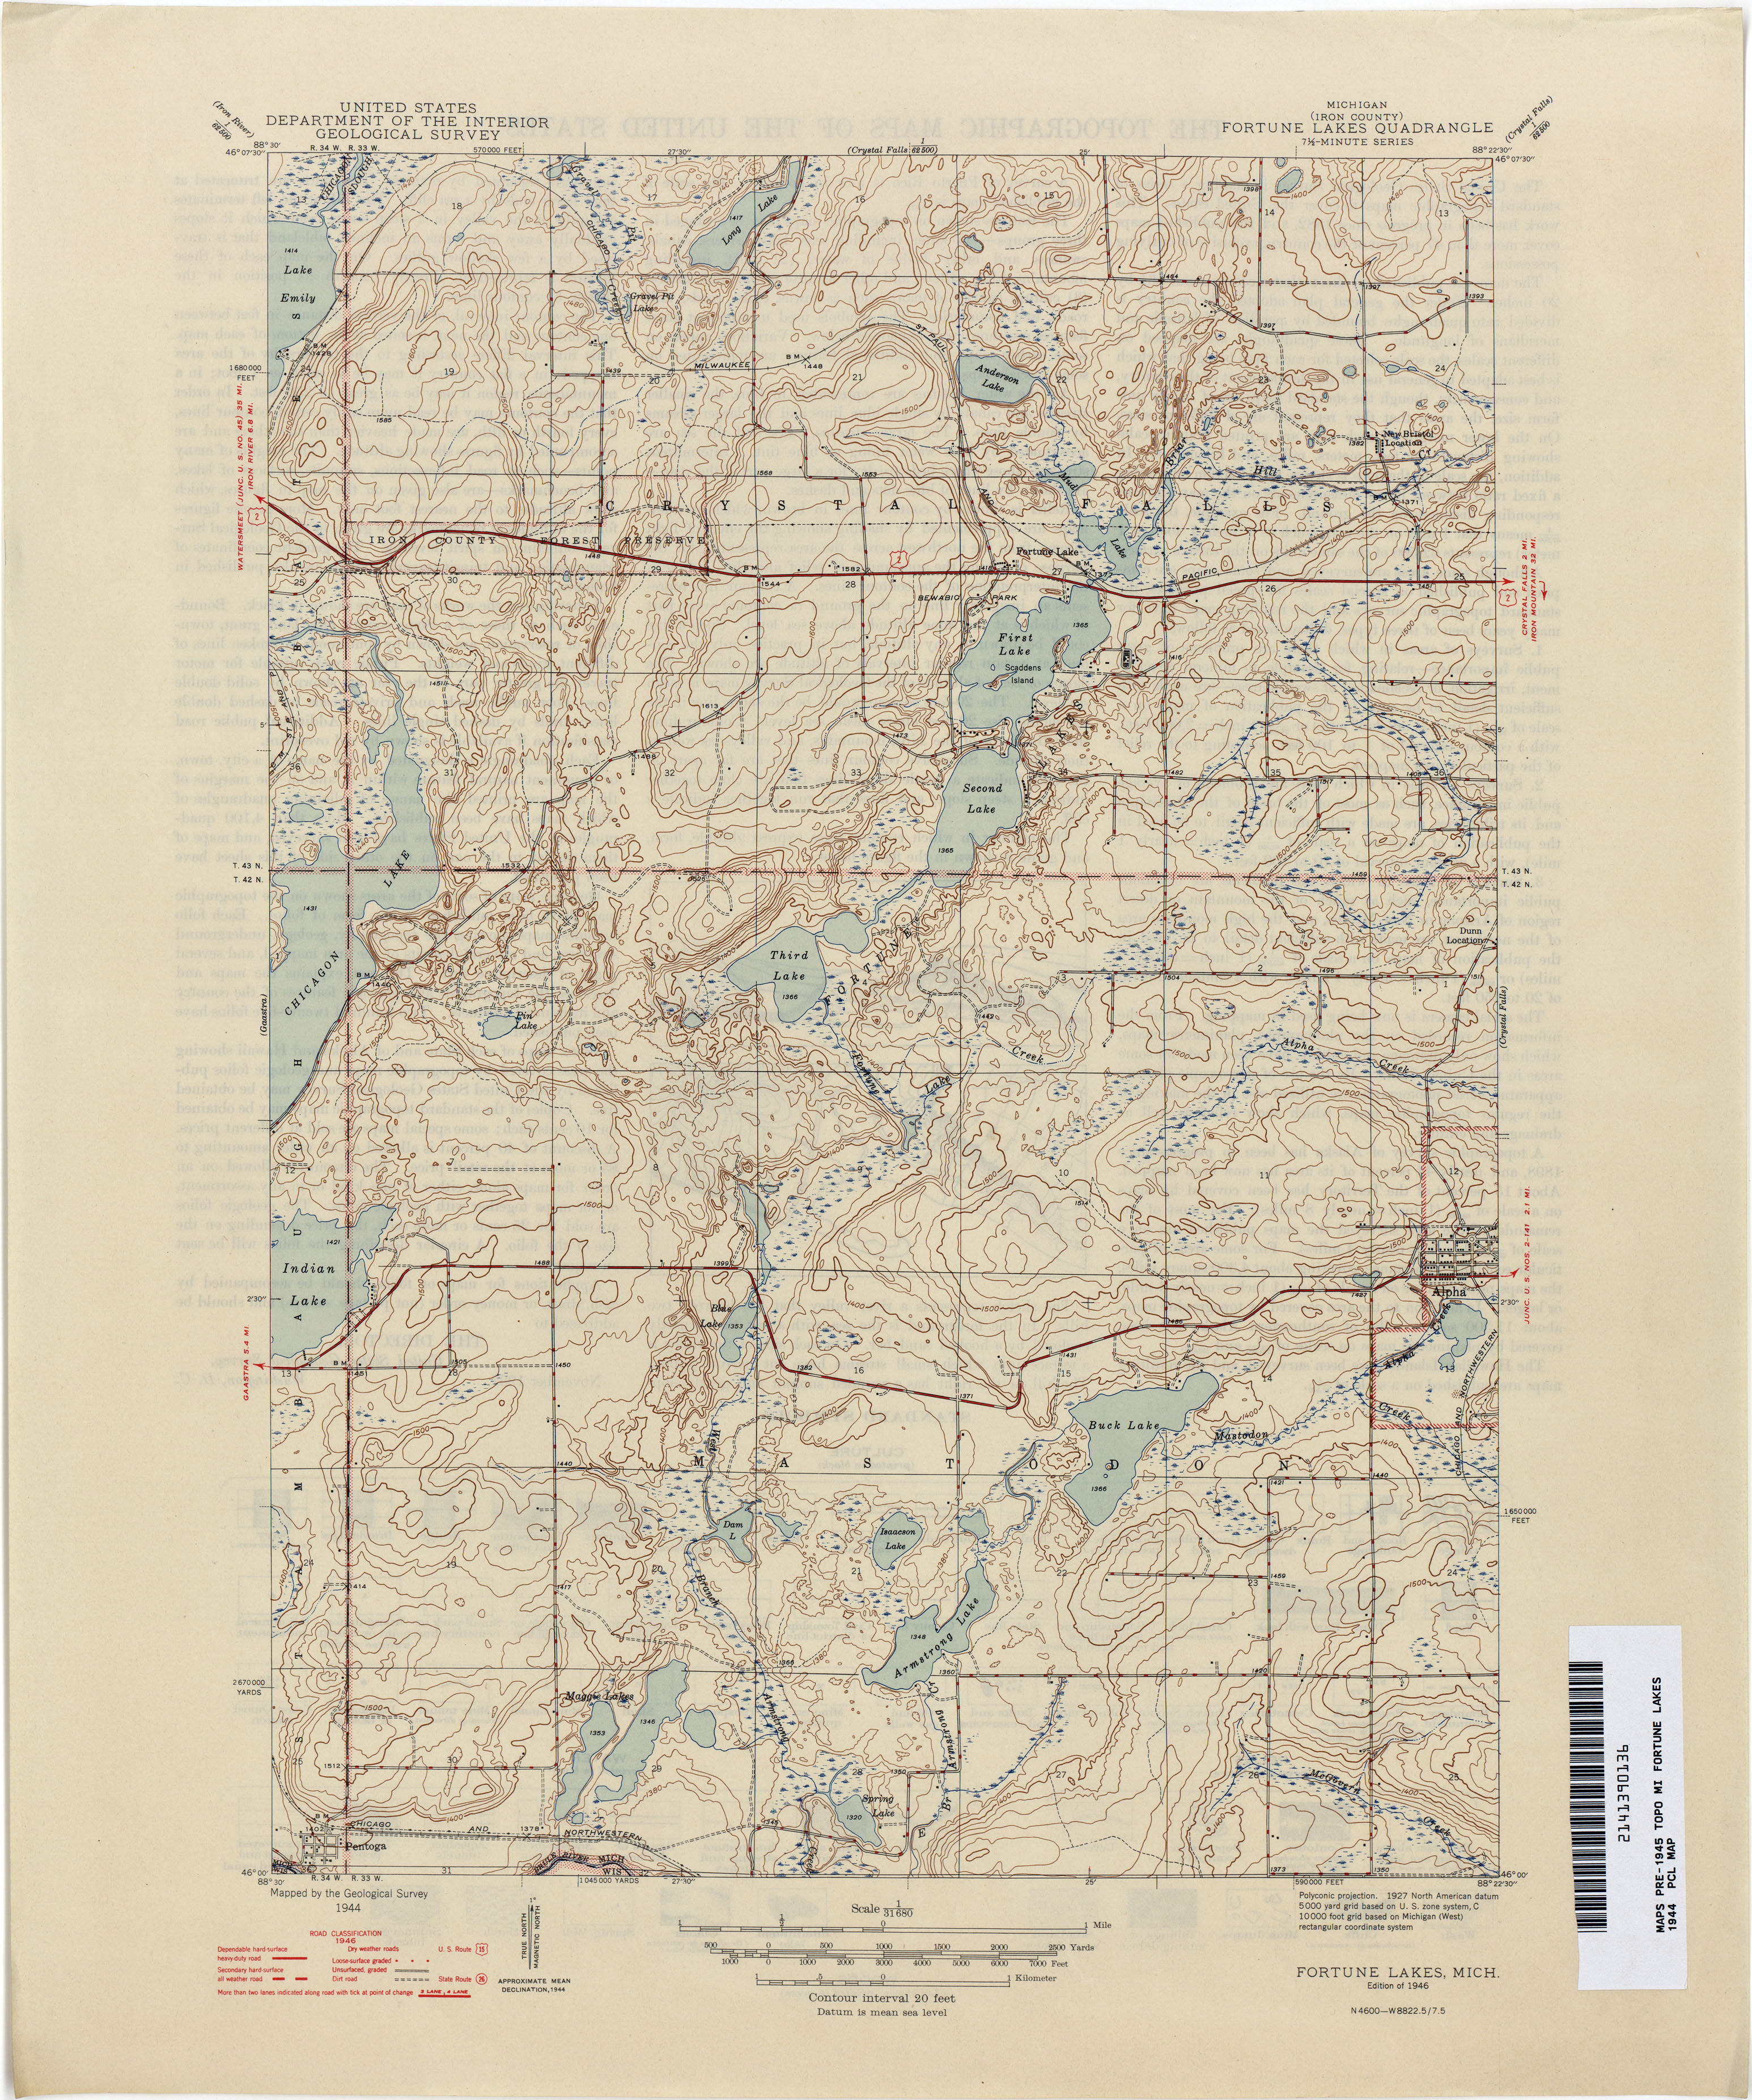 Historical Topographic Maps Perry Castaneda Map Collection